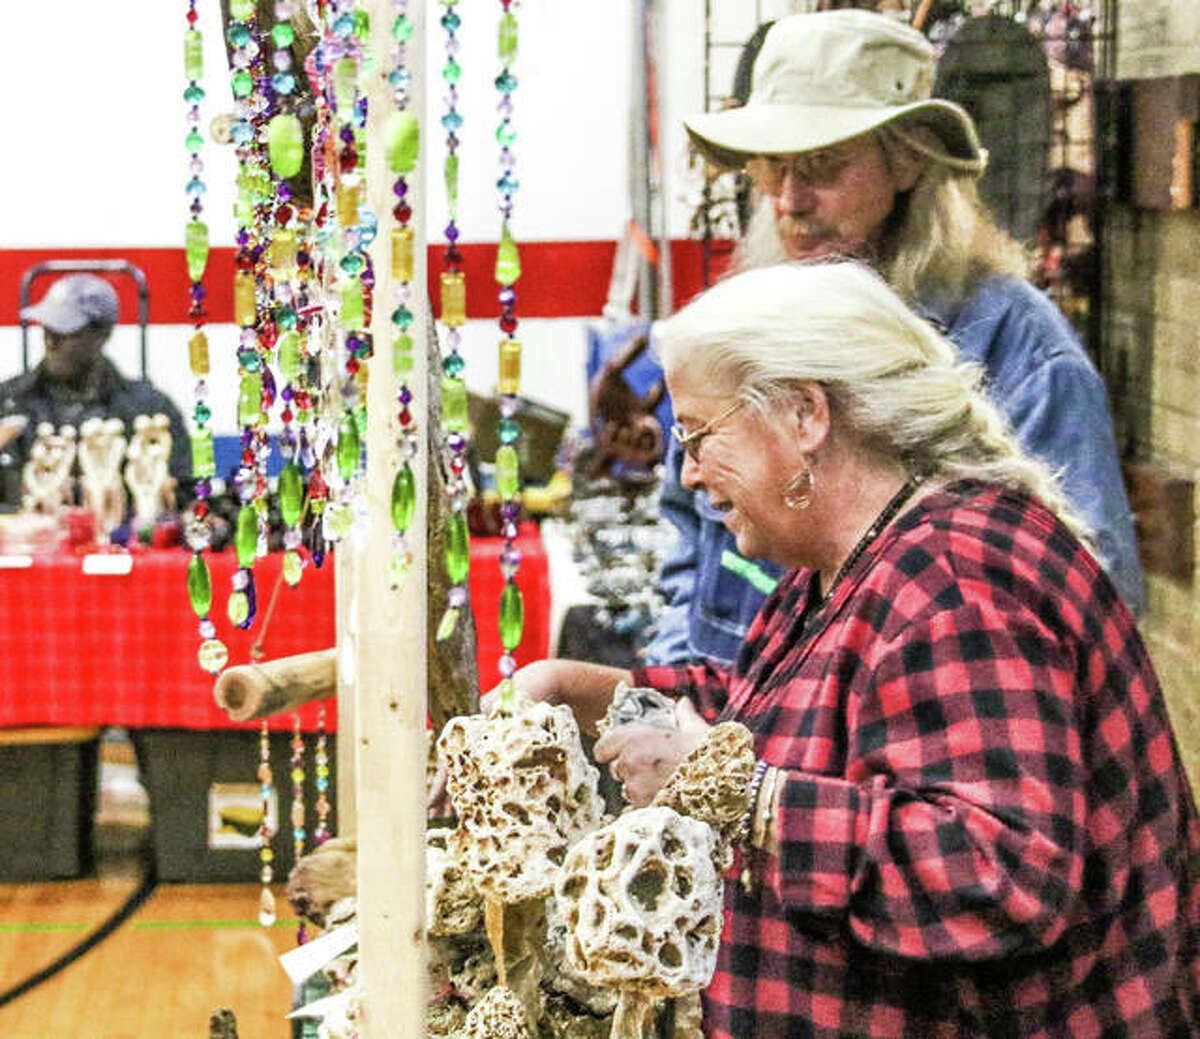 Sherry Kirbach, alongside her husband, Steve, smiles as she adjusts one of her rock mushroom sculptures Saturday at the Green Gift Bazaar. Warm, sunny weather kept crowds flowing through the rows of displays.